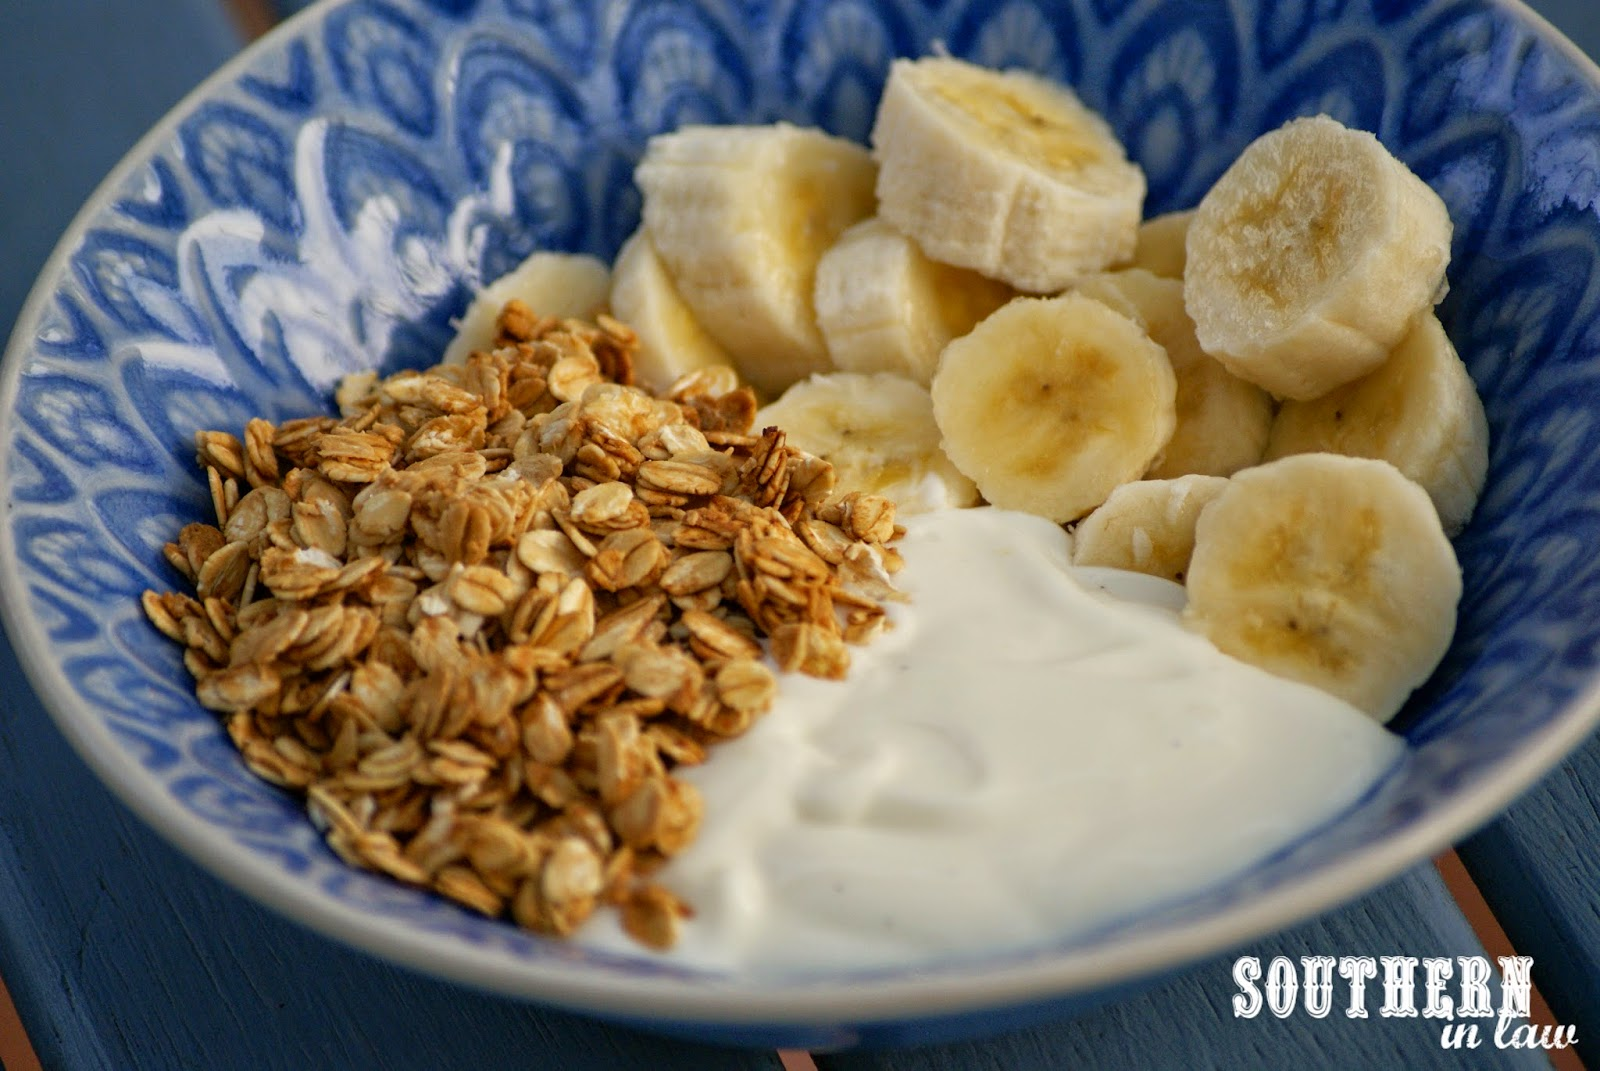 Homemade Honey Vanilla Granola with Bananas and Yogurt